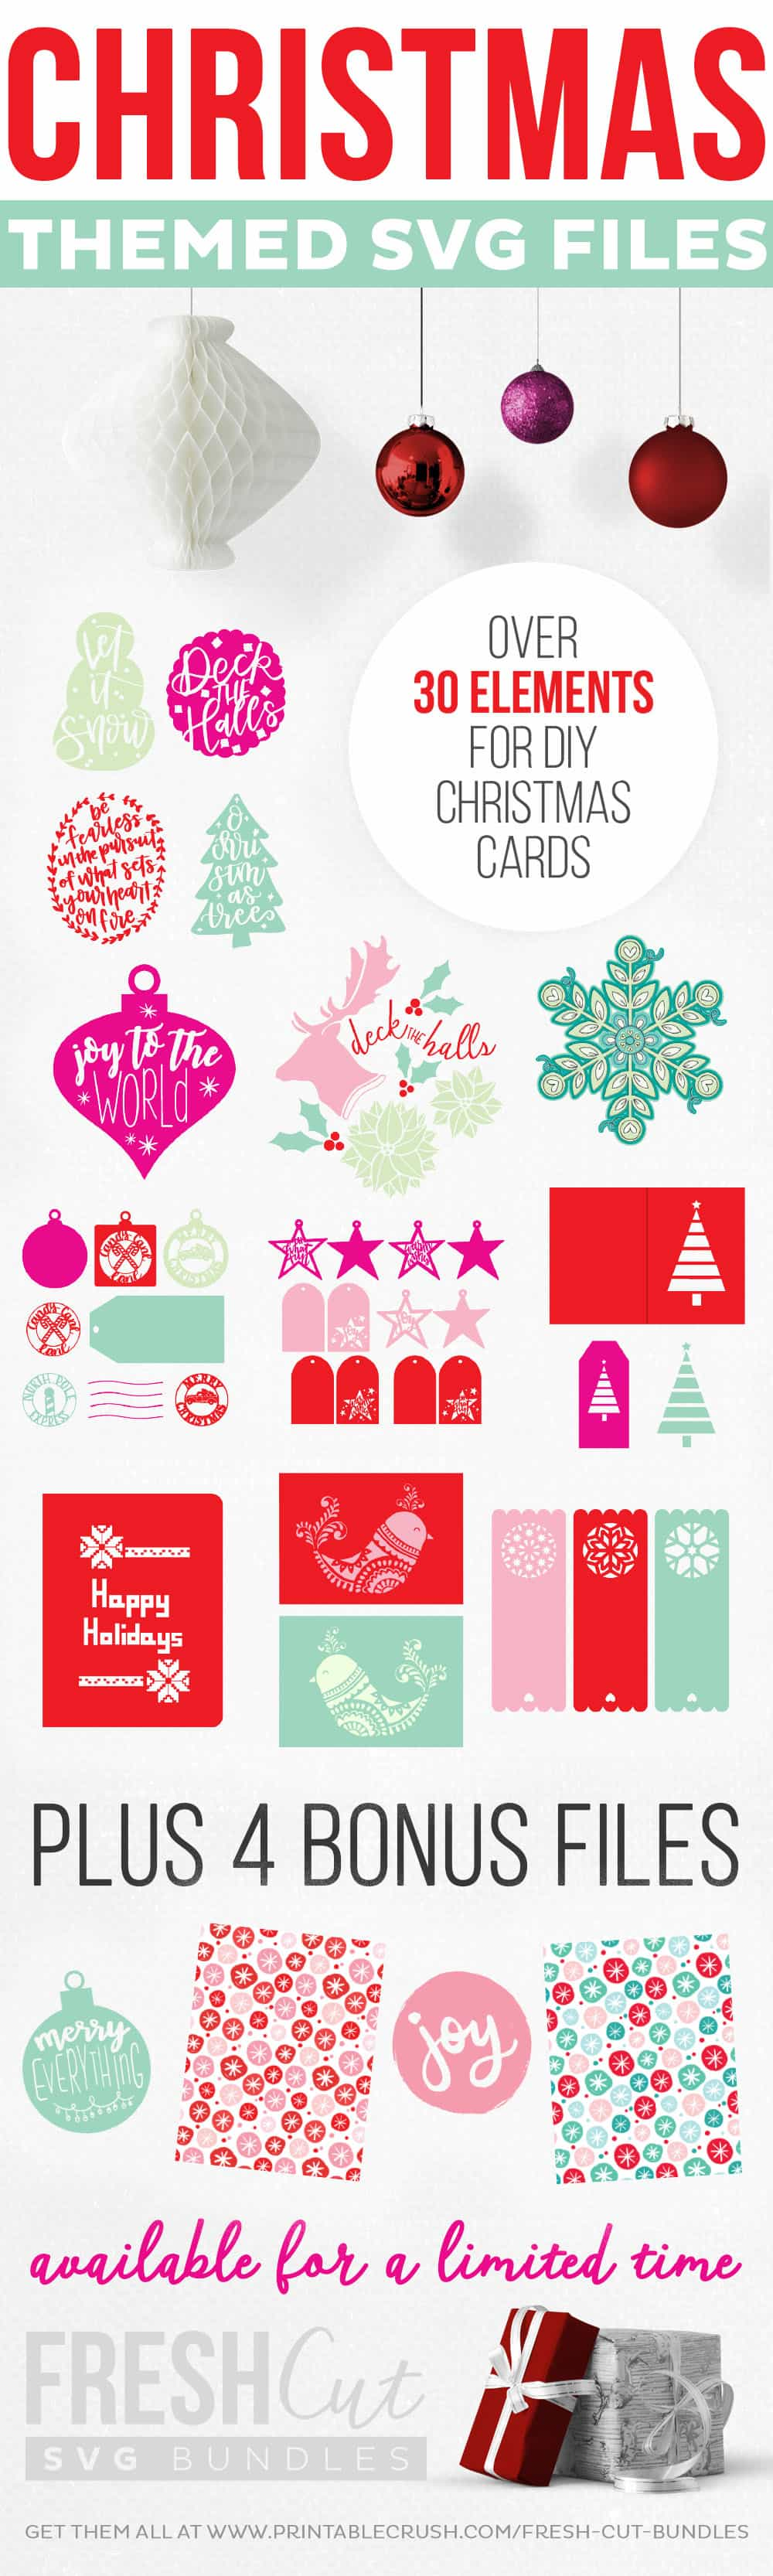 Add a little handmade to your holidays with these Holiday Cards and Gift Tags!